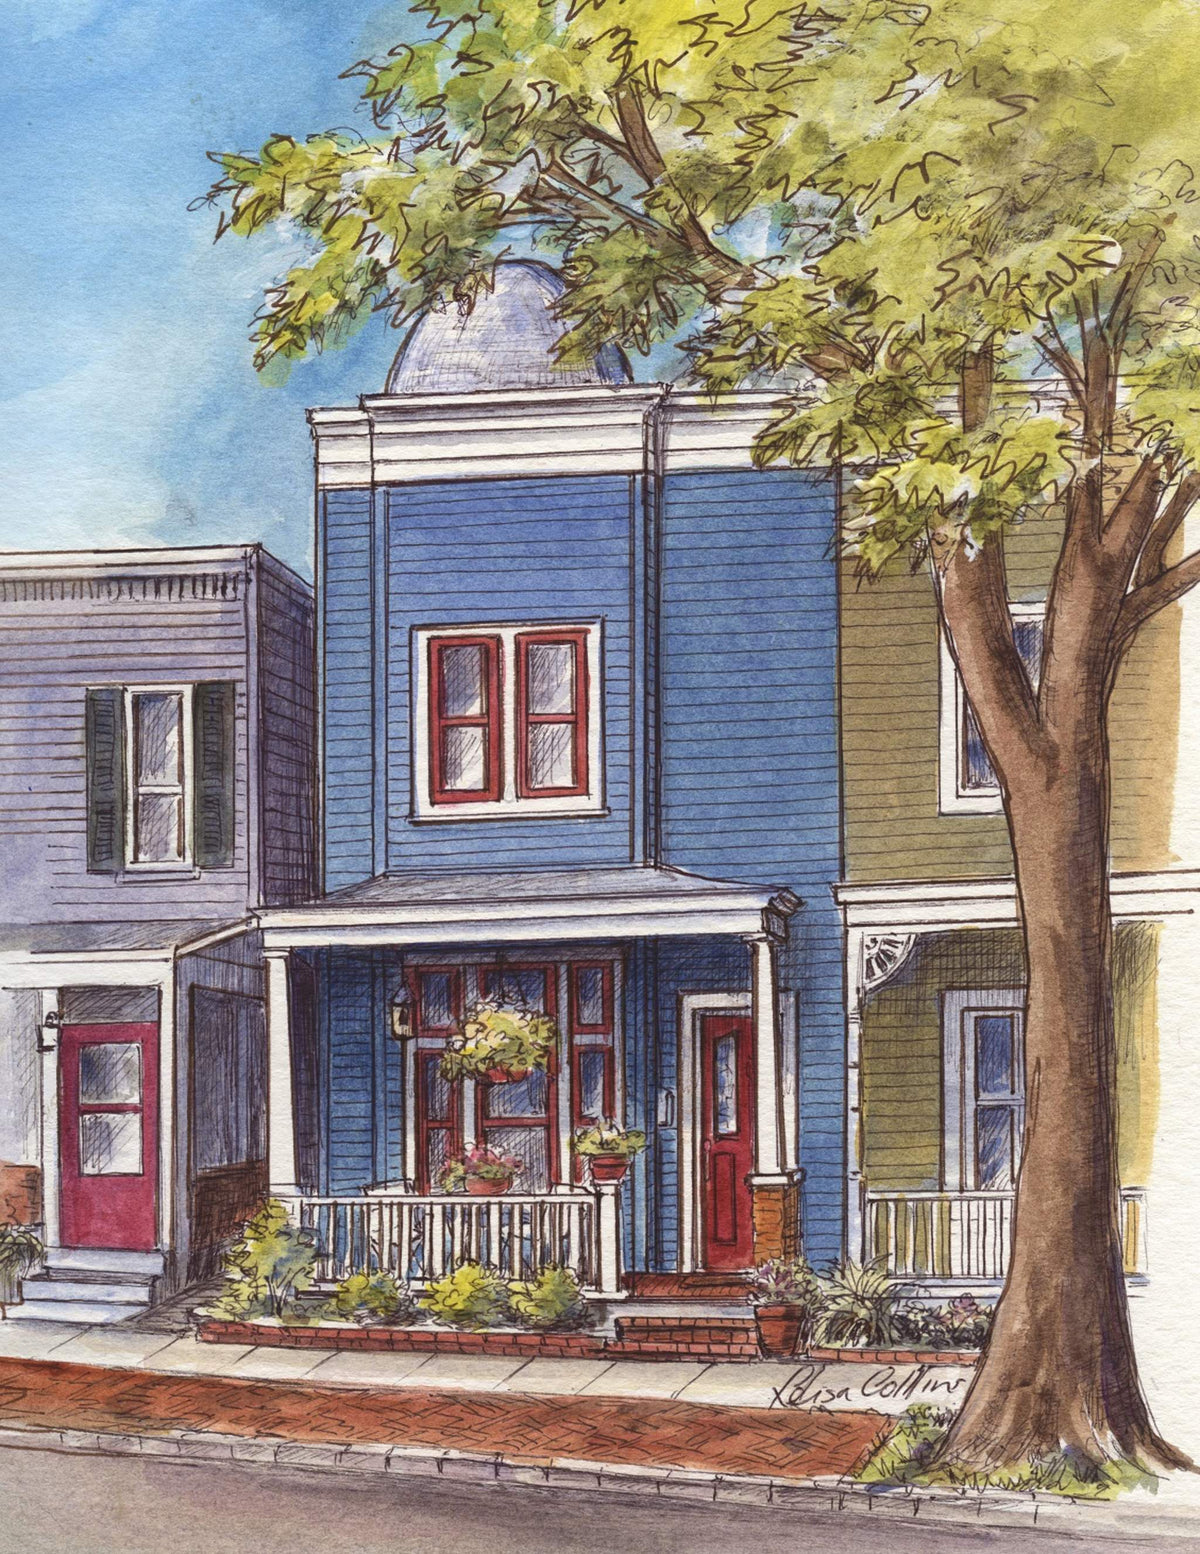 leisa-collins-art-shop - Old Town Alexandria VA Victorian Row Houses - Pen and watercolor